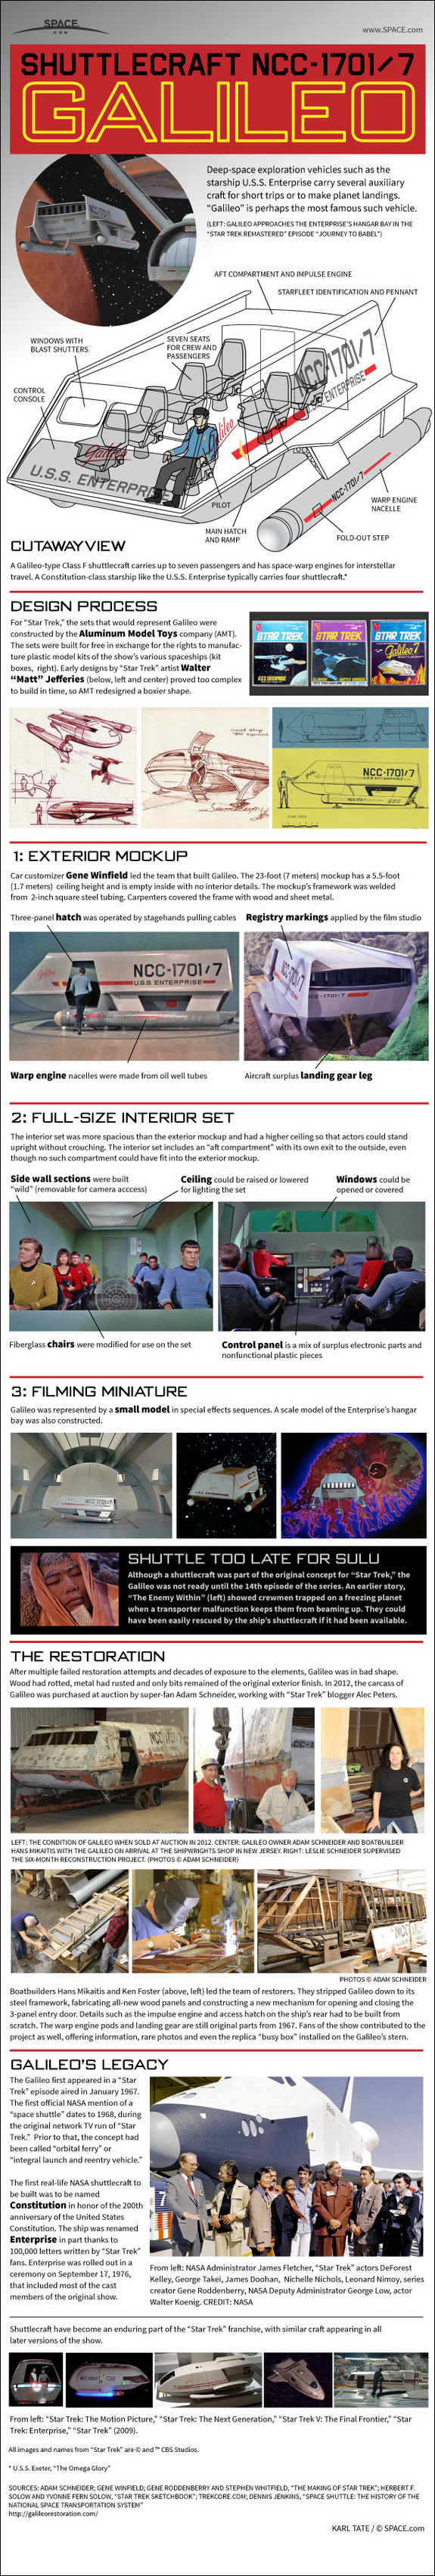 Find out all about Star Trek's Galileo shuttlecraft in this SPACE.com infographic.